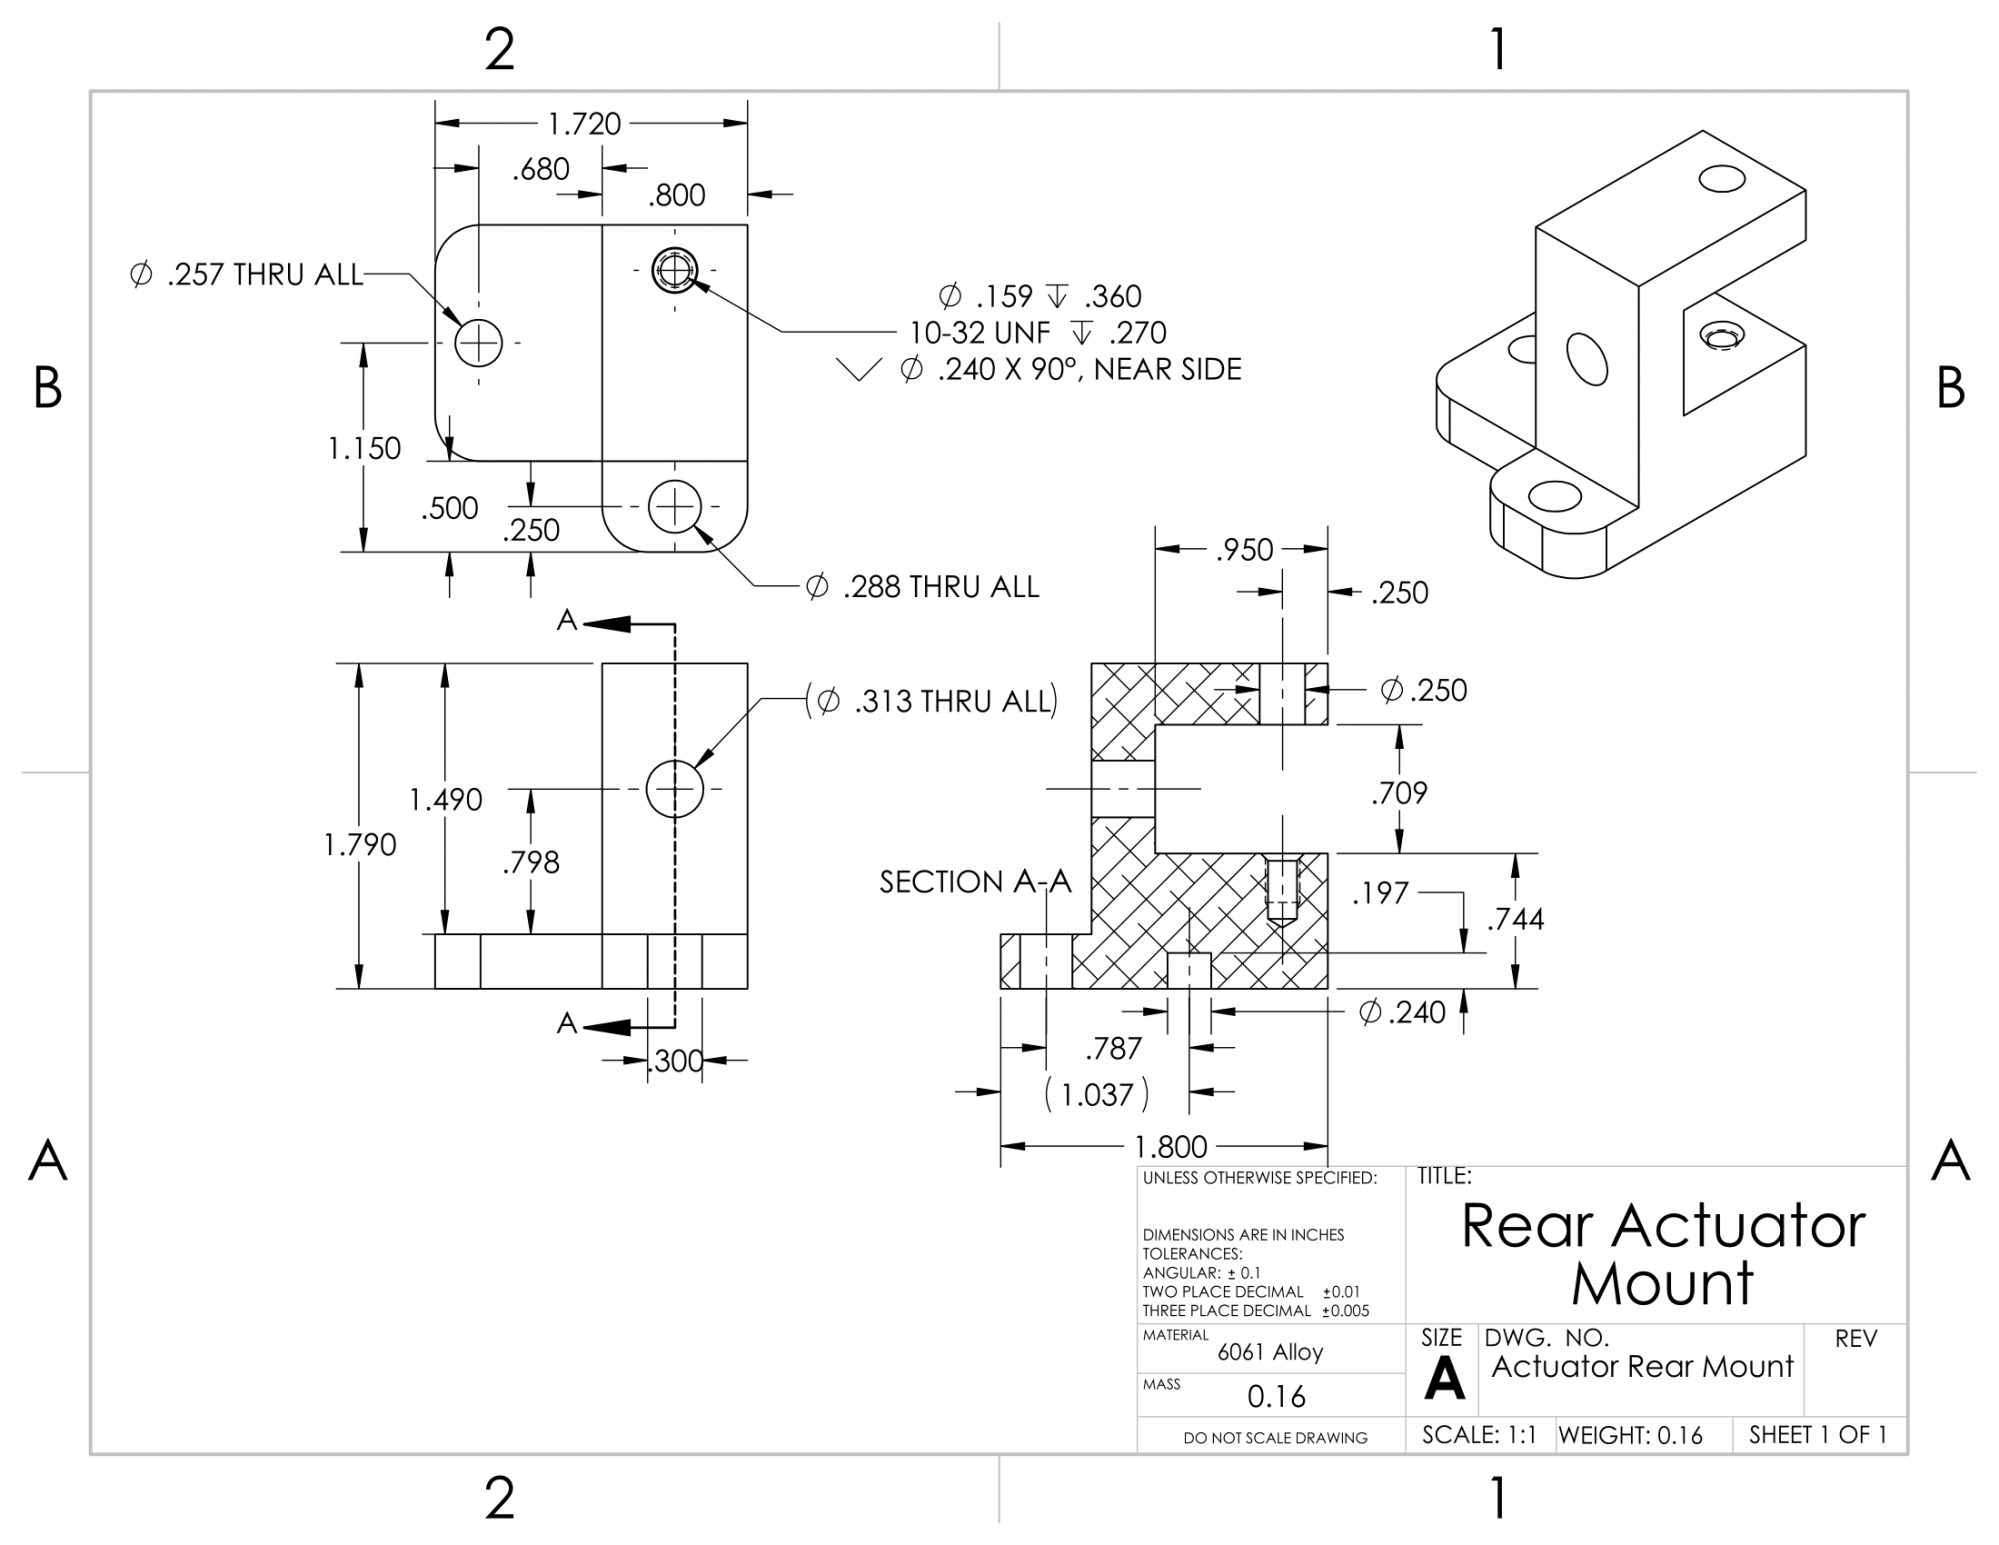 hight resolution of actuator rear mount steven m wiring diagram for